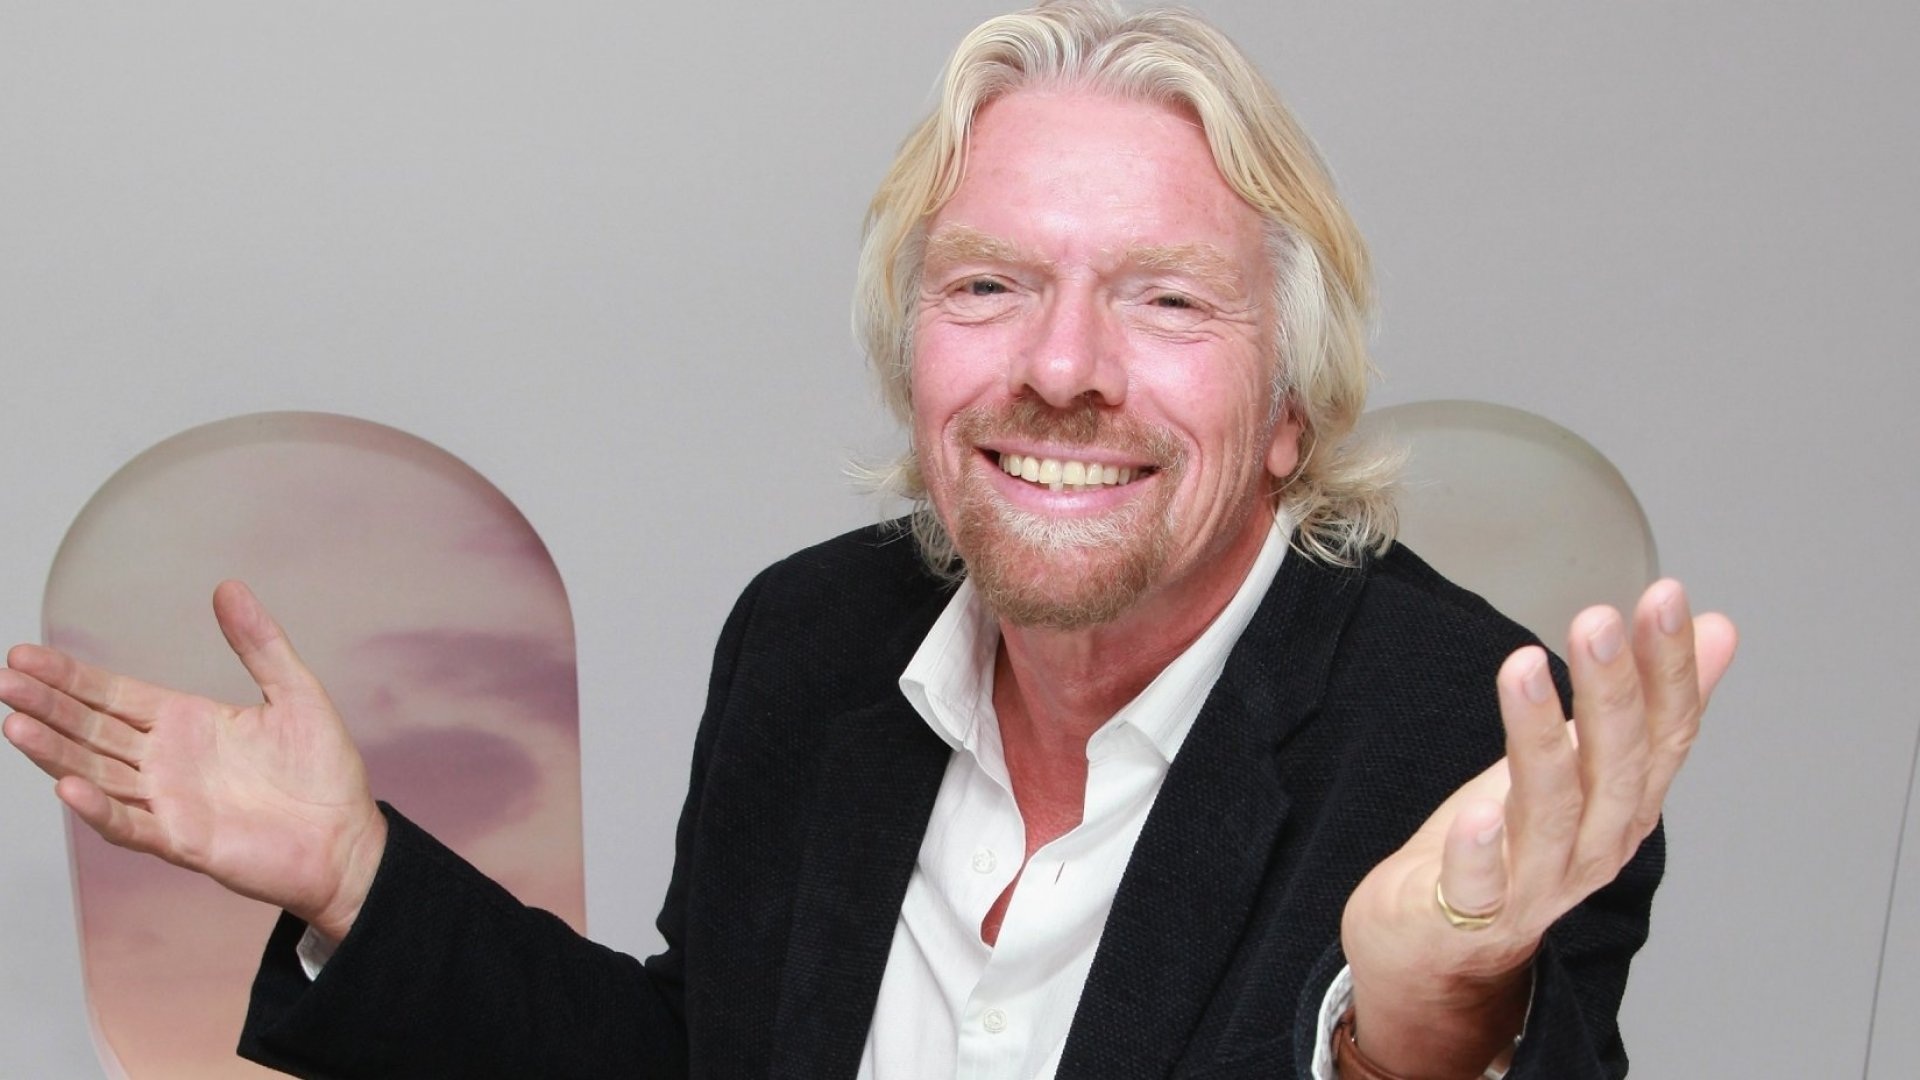 Get More Done: 15 Things the Most Successful People Do Differently to Be More Productive